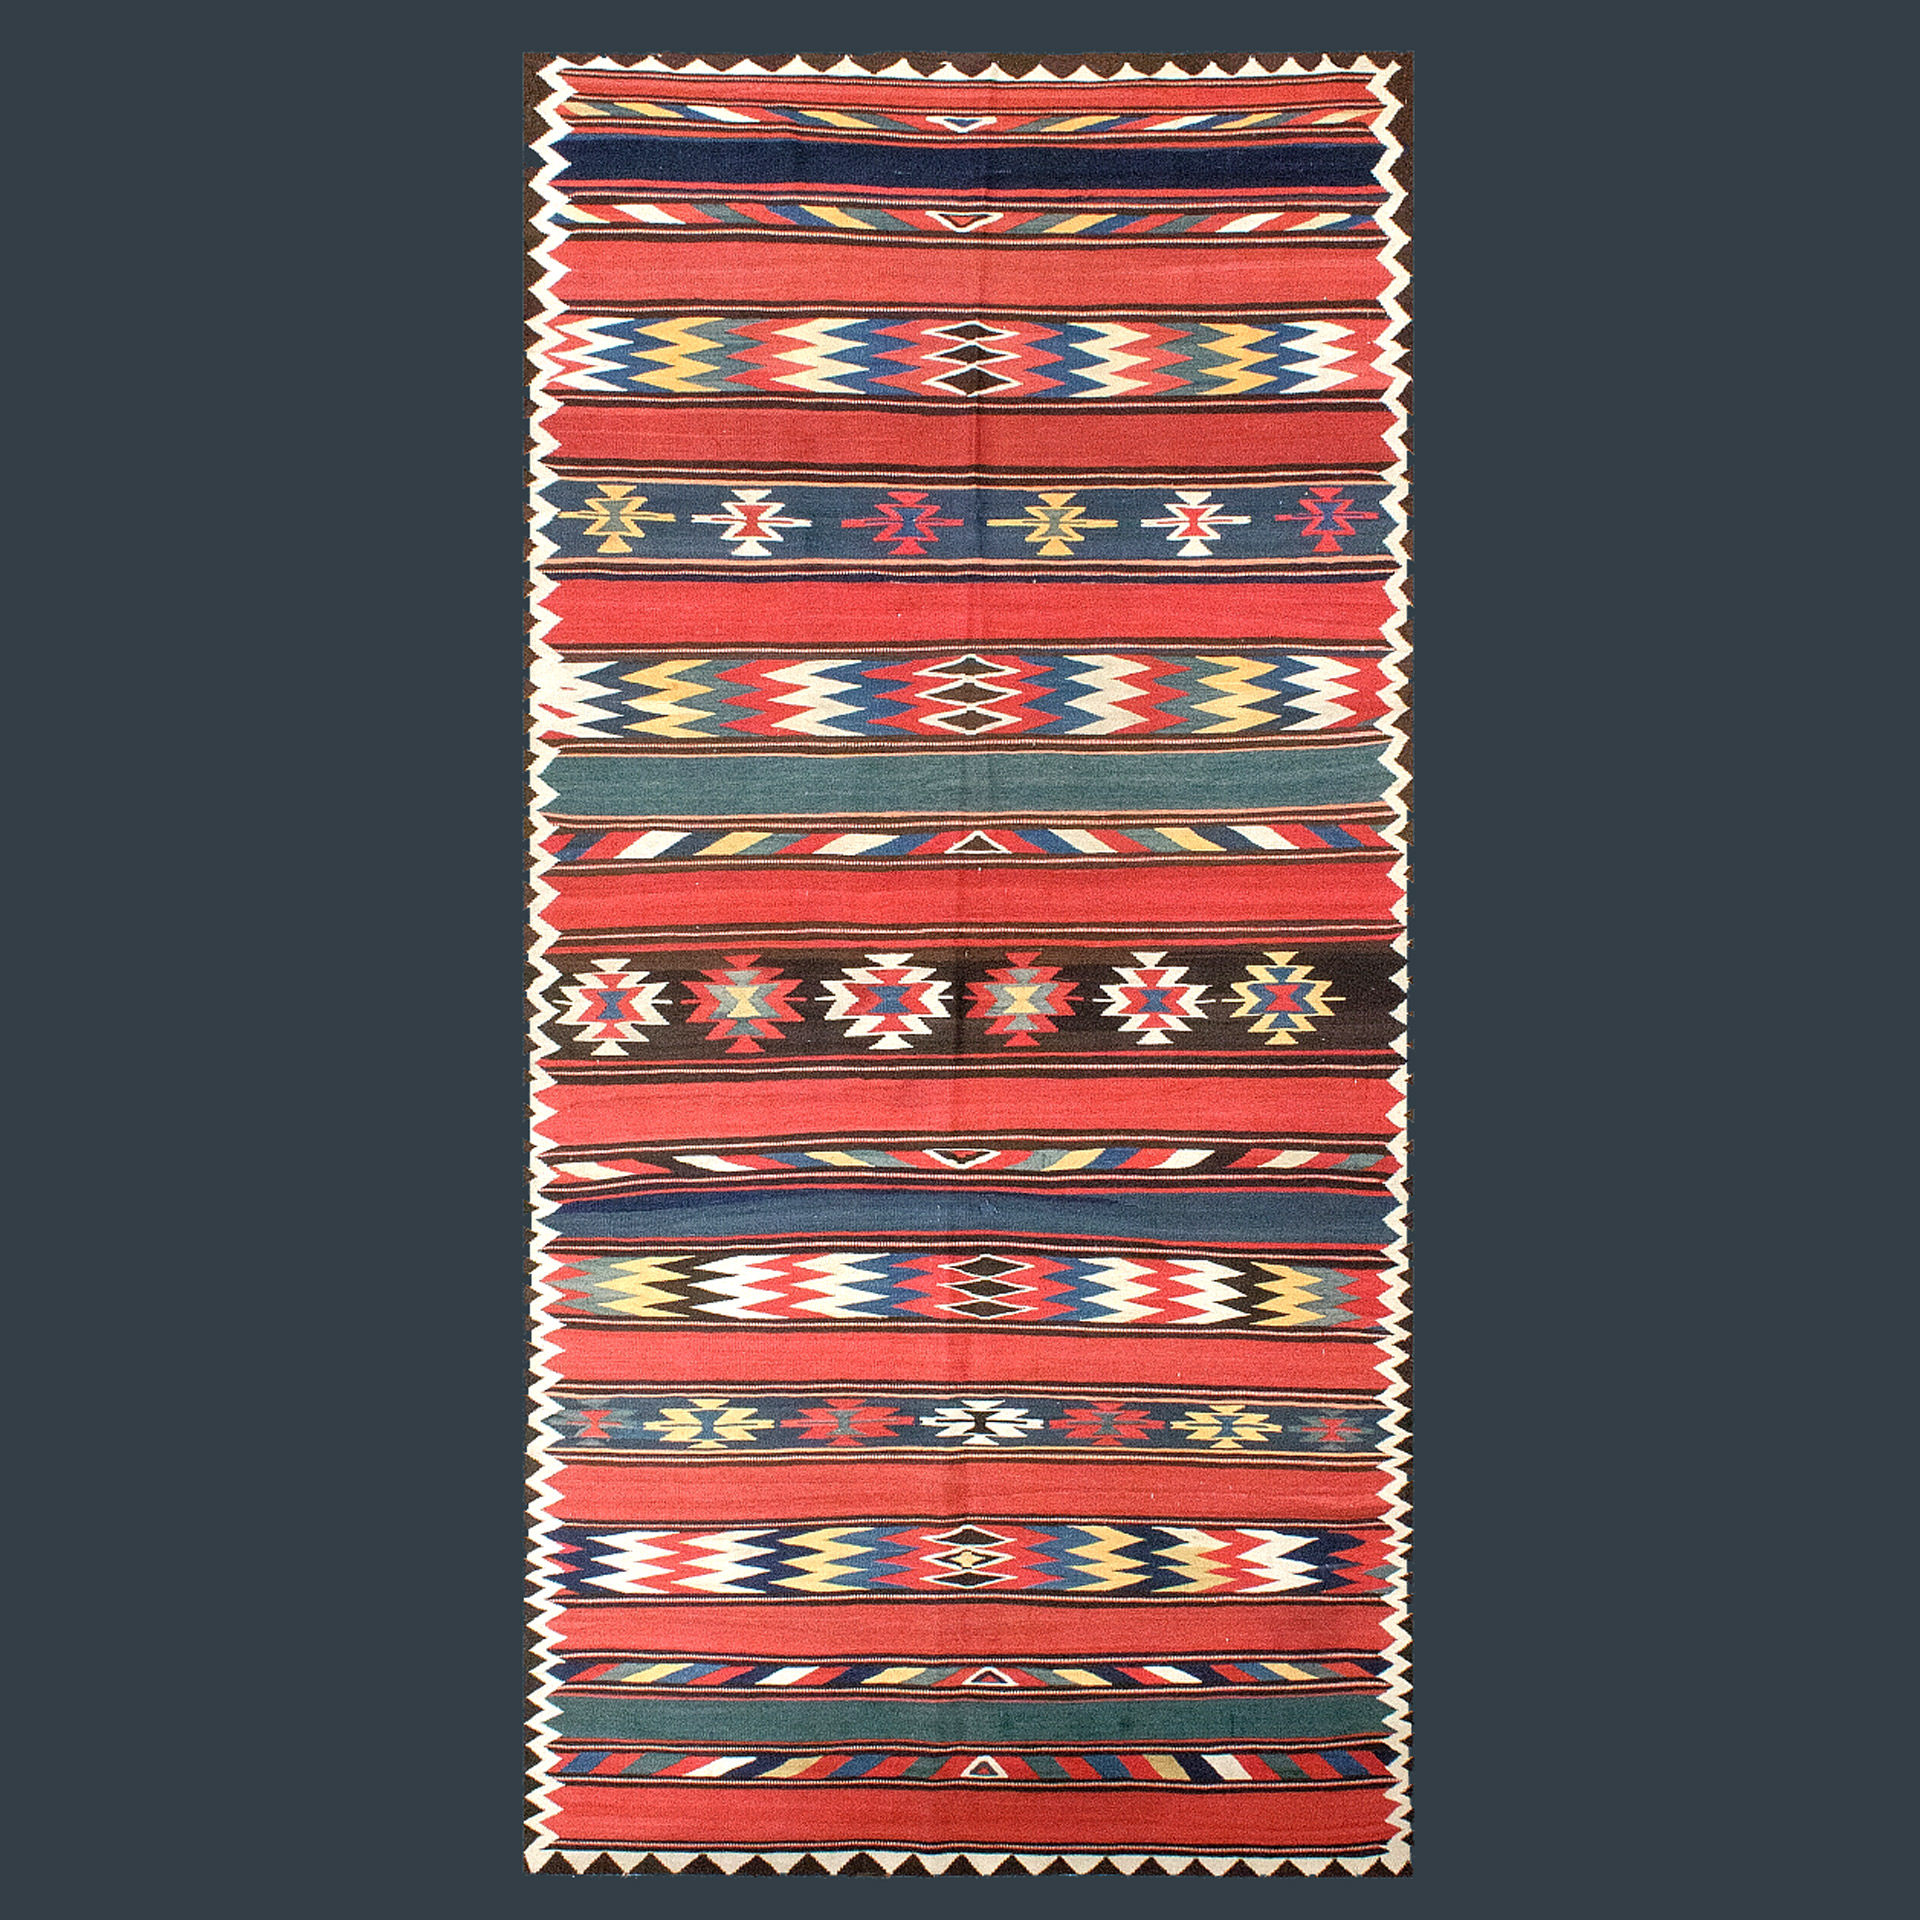 Antique Veramin kilim carpet, north central Persia, polychromatic bands of color with geometric motifs and some bands of plain color with no decoration